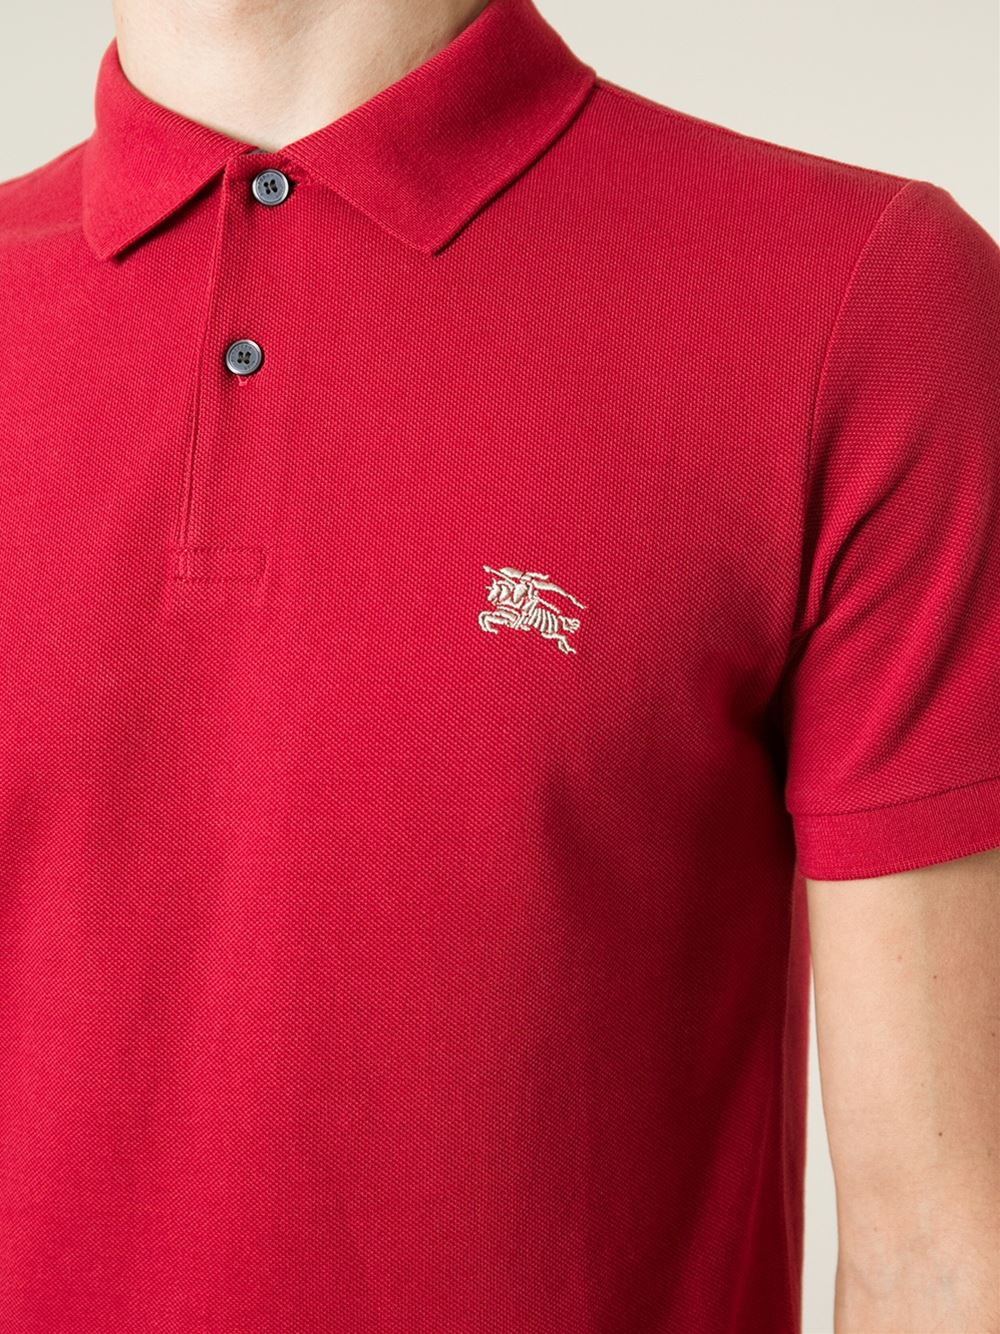 Lyst burberry brit logo embroidered polo shirt in red for Polo shirts with embroidery